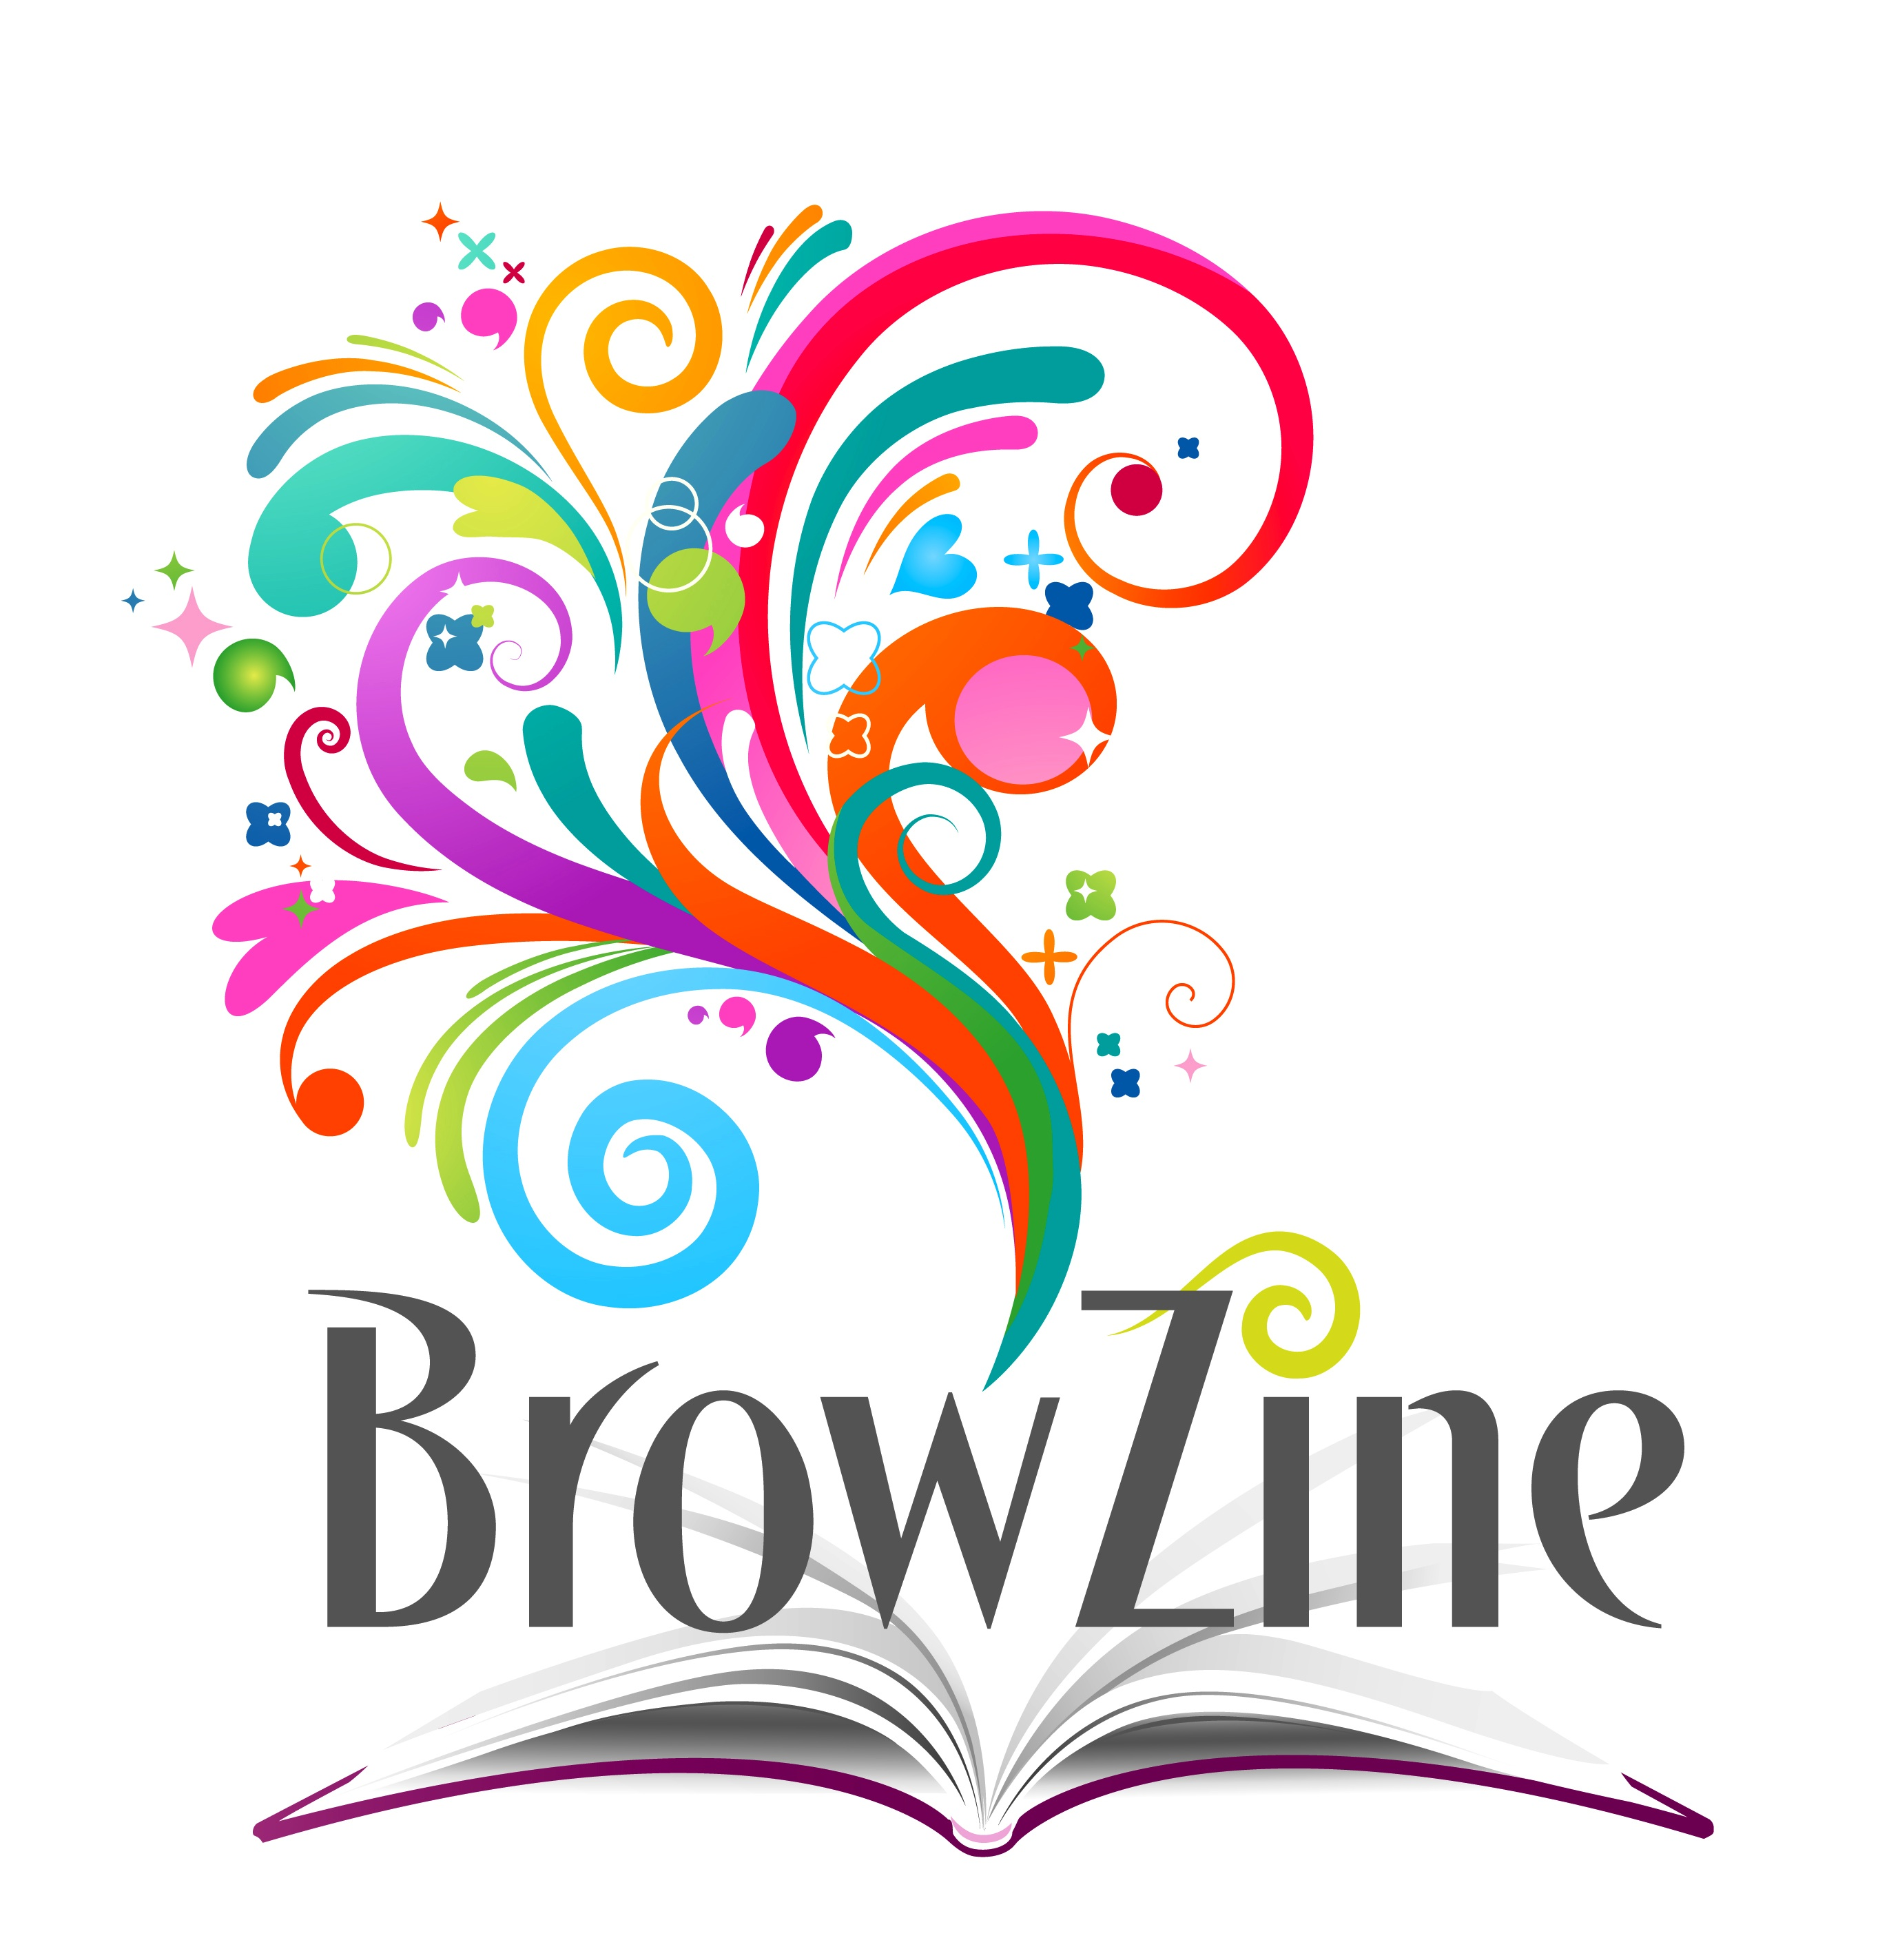 browzine from third iron